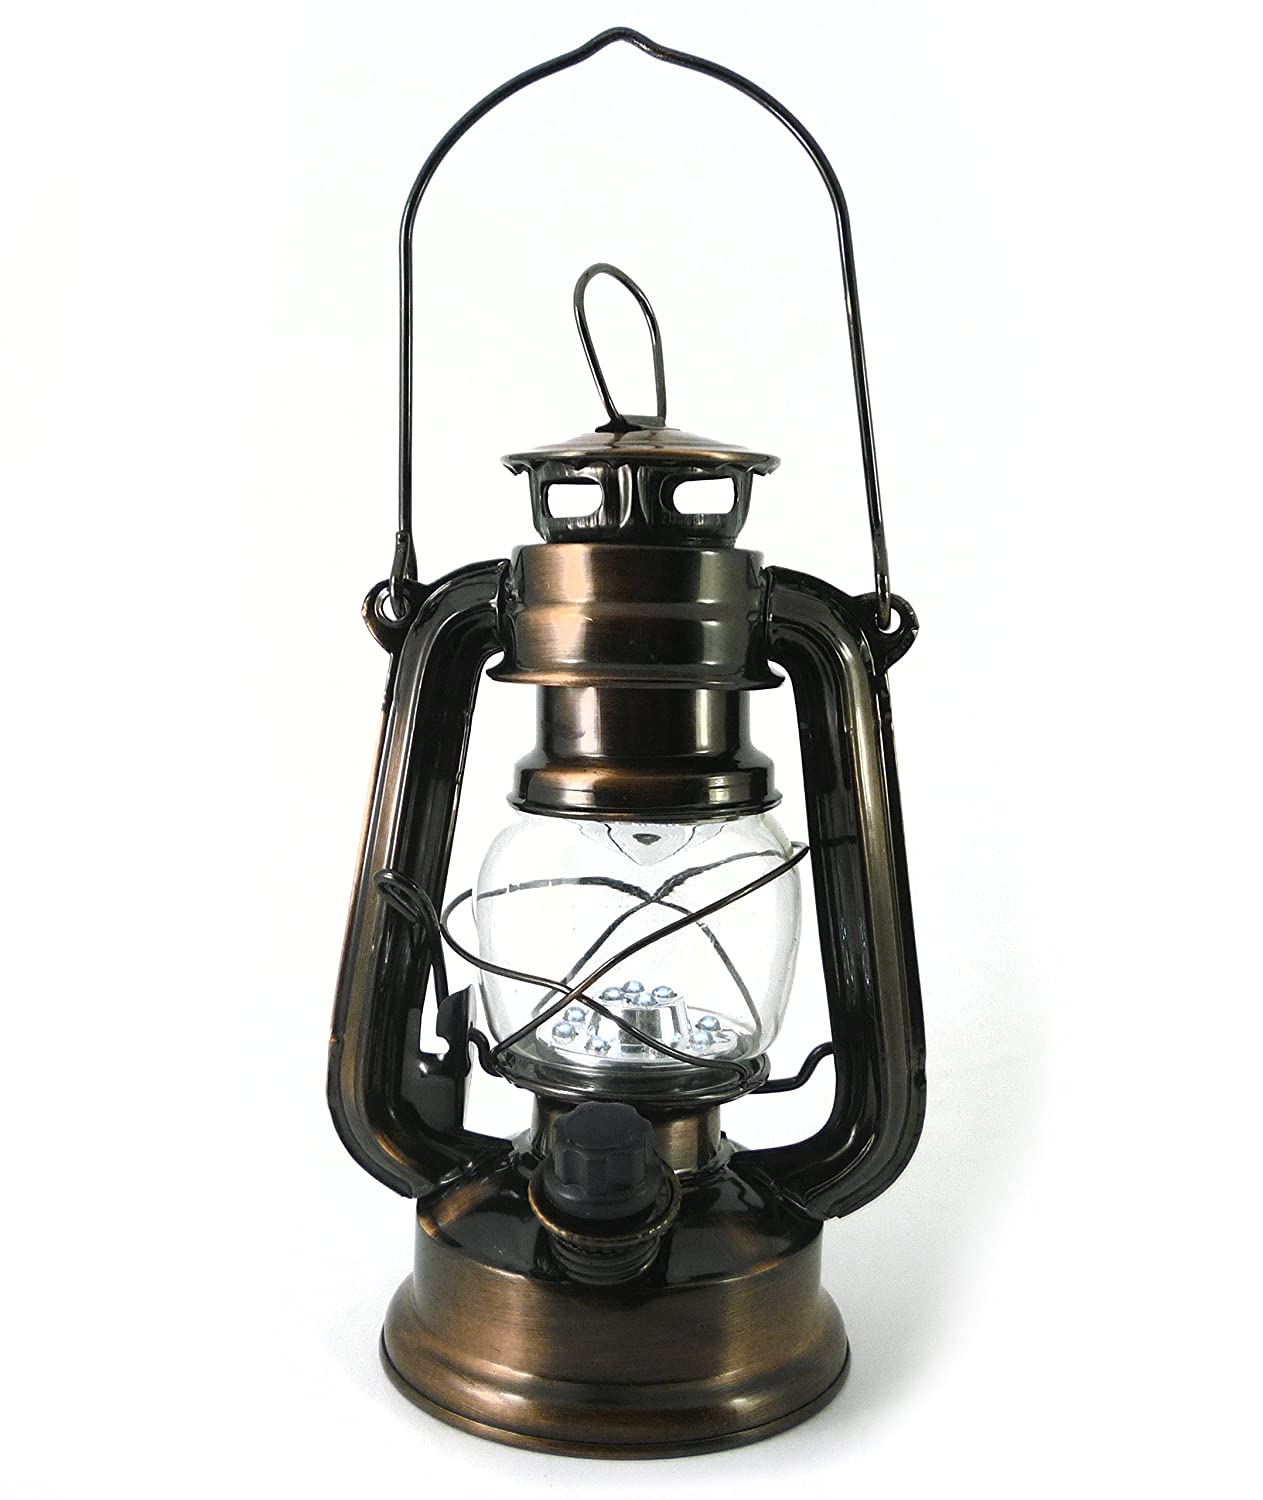 Hurricane Lamp LED Lantern Light for Camping Hiking Car Shed ...